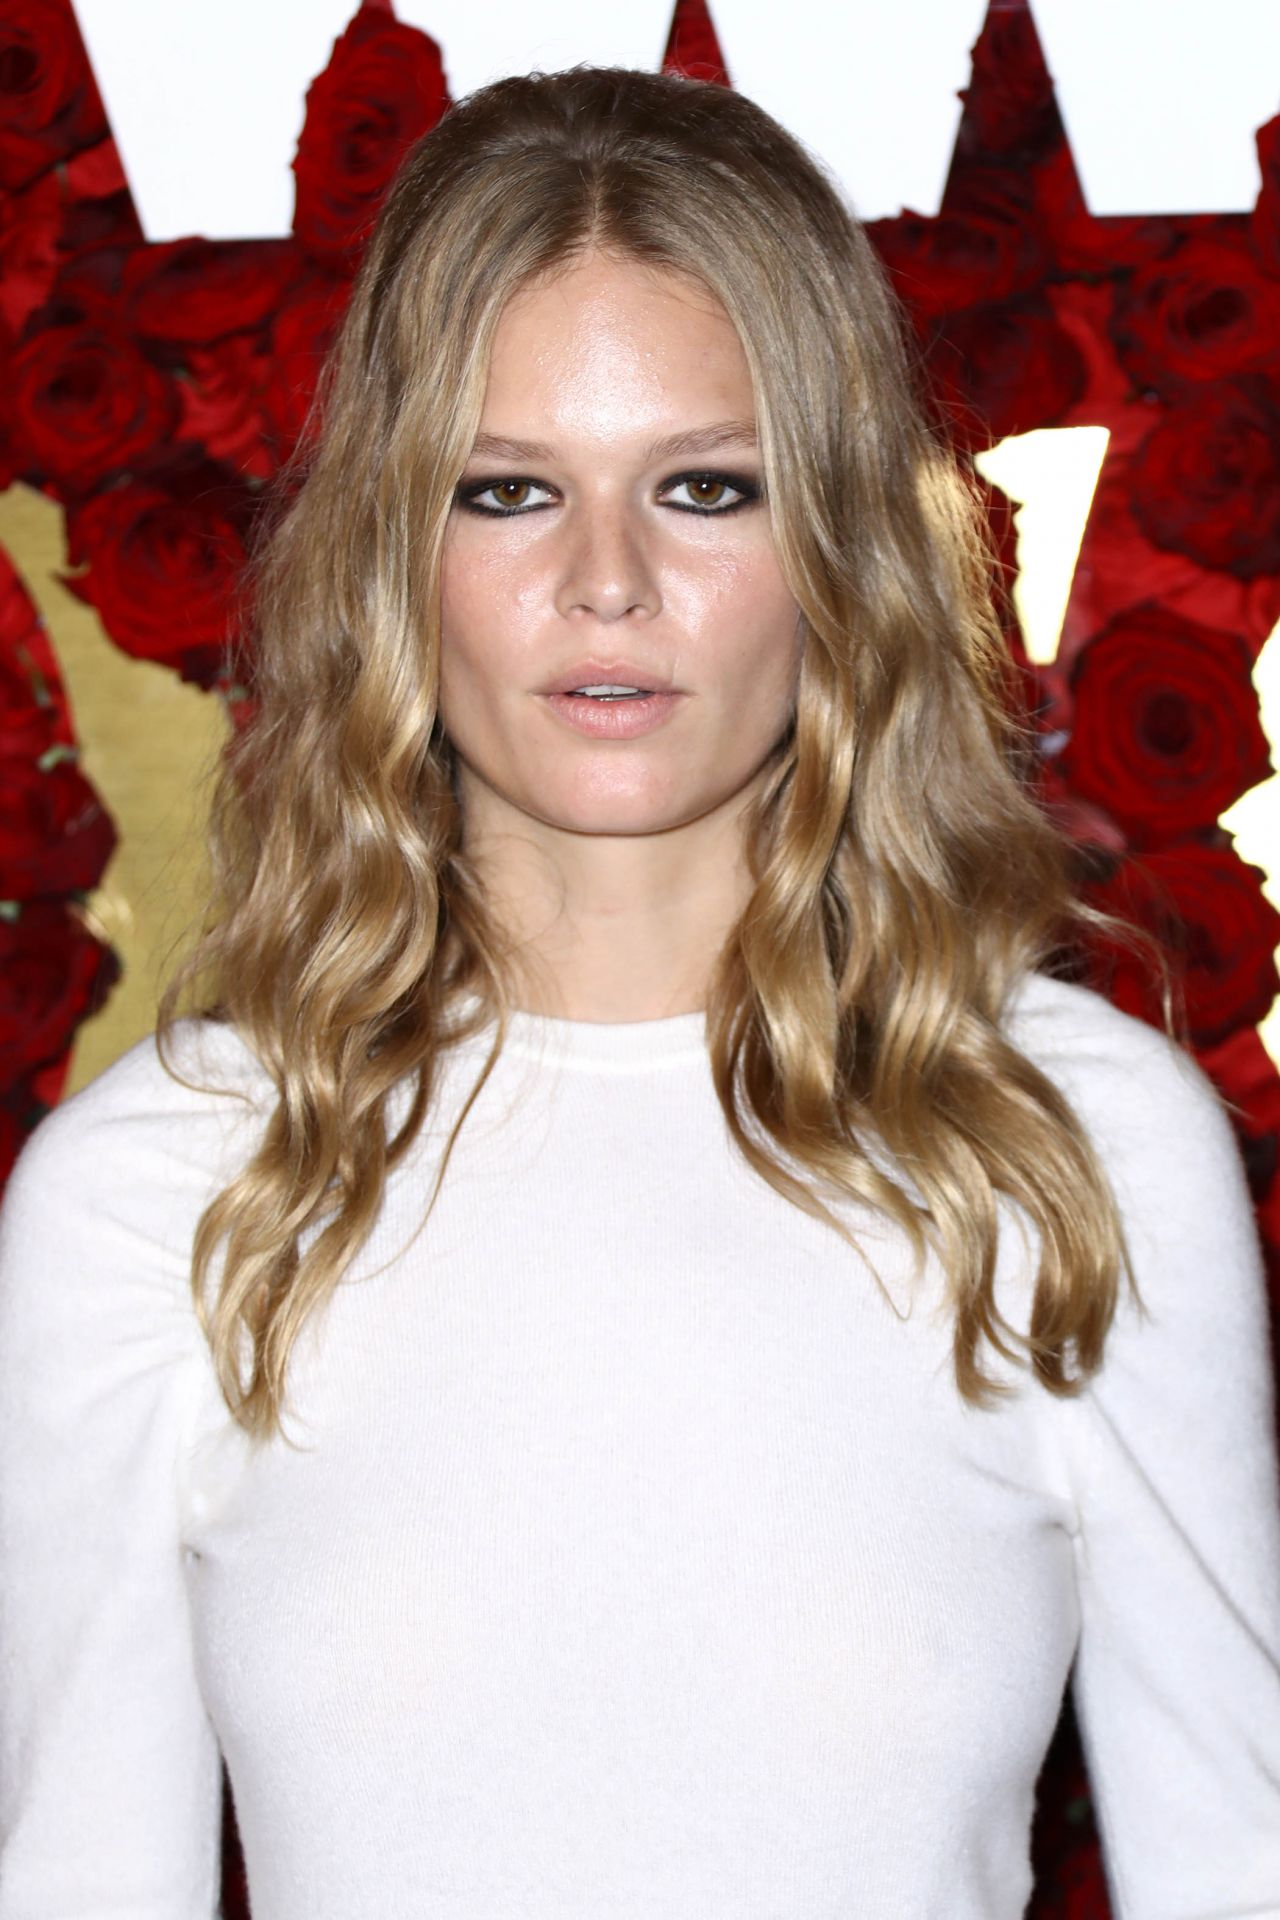 Anna Ewers By Karl Lagerfeld For: 2017 WWD Honors Event In New York City